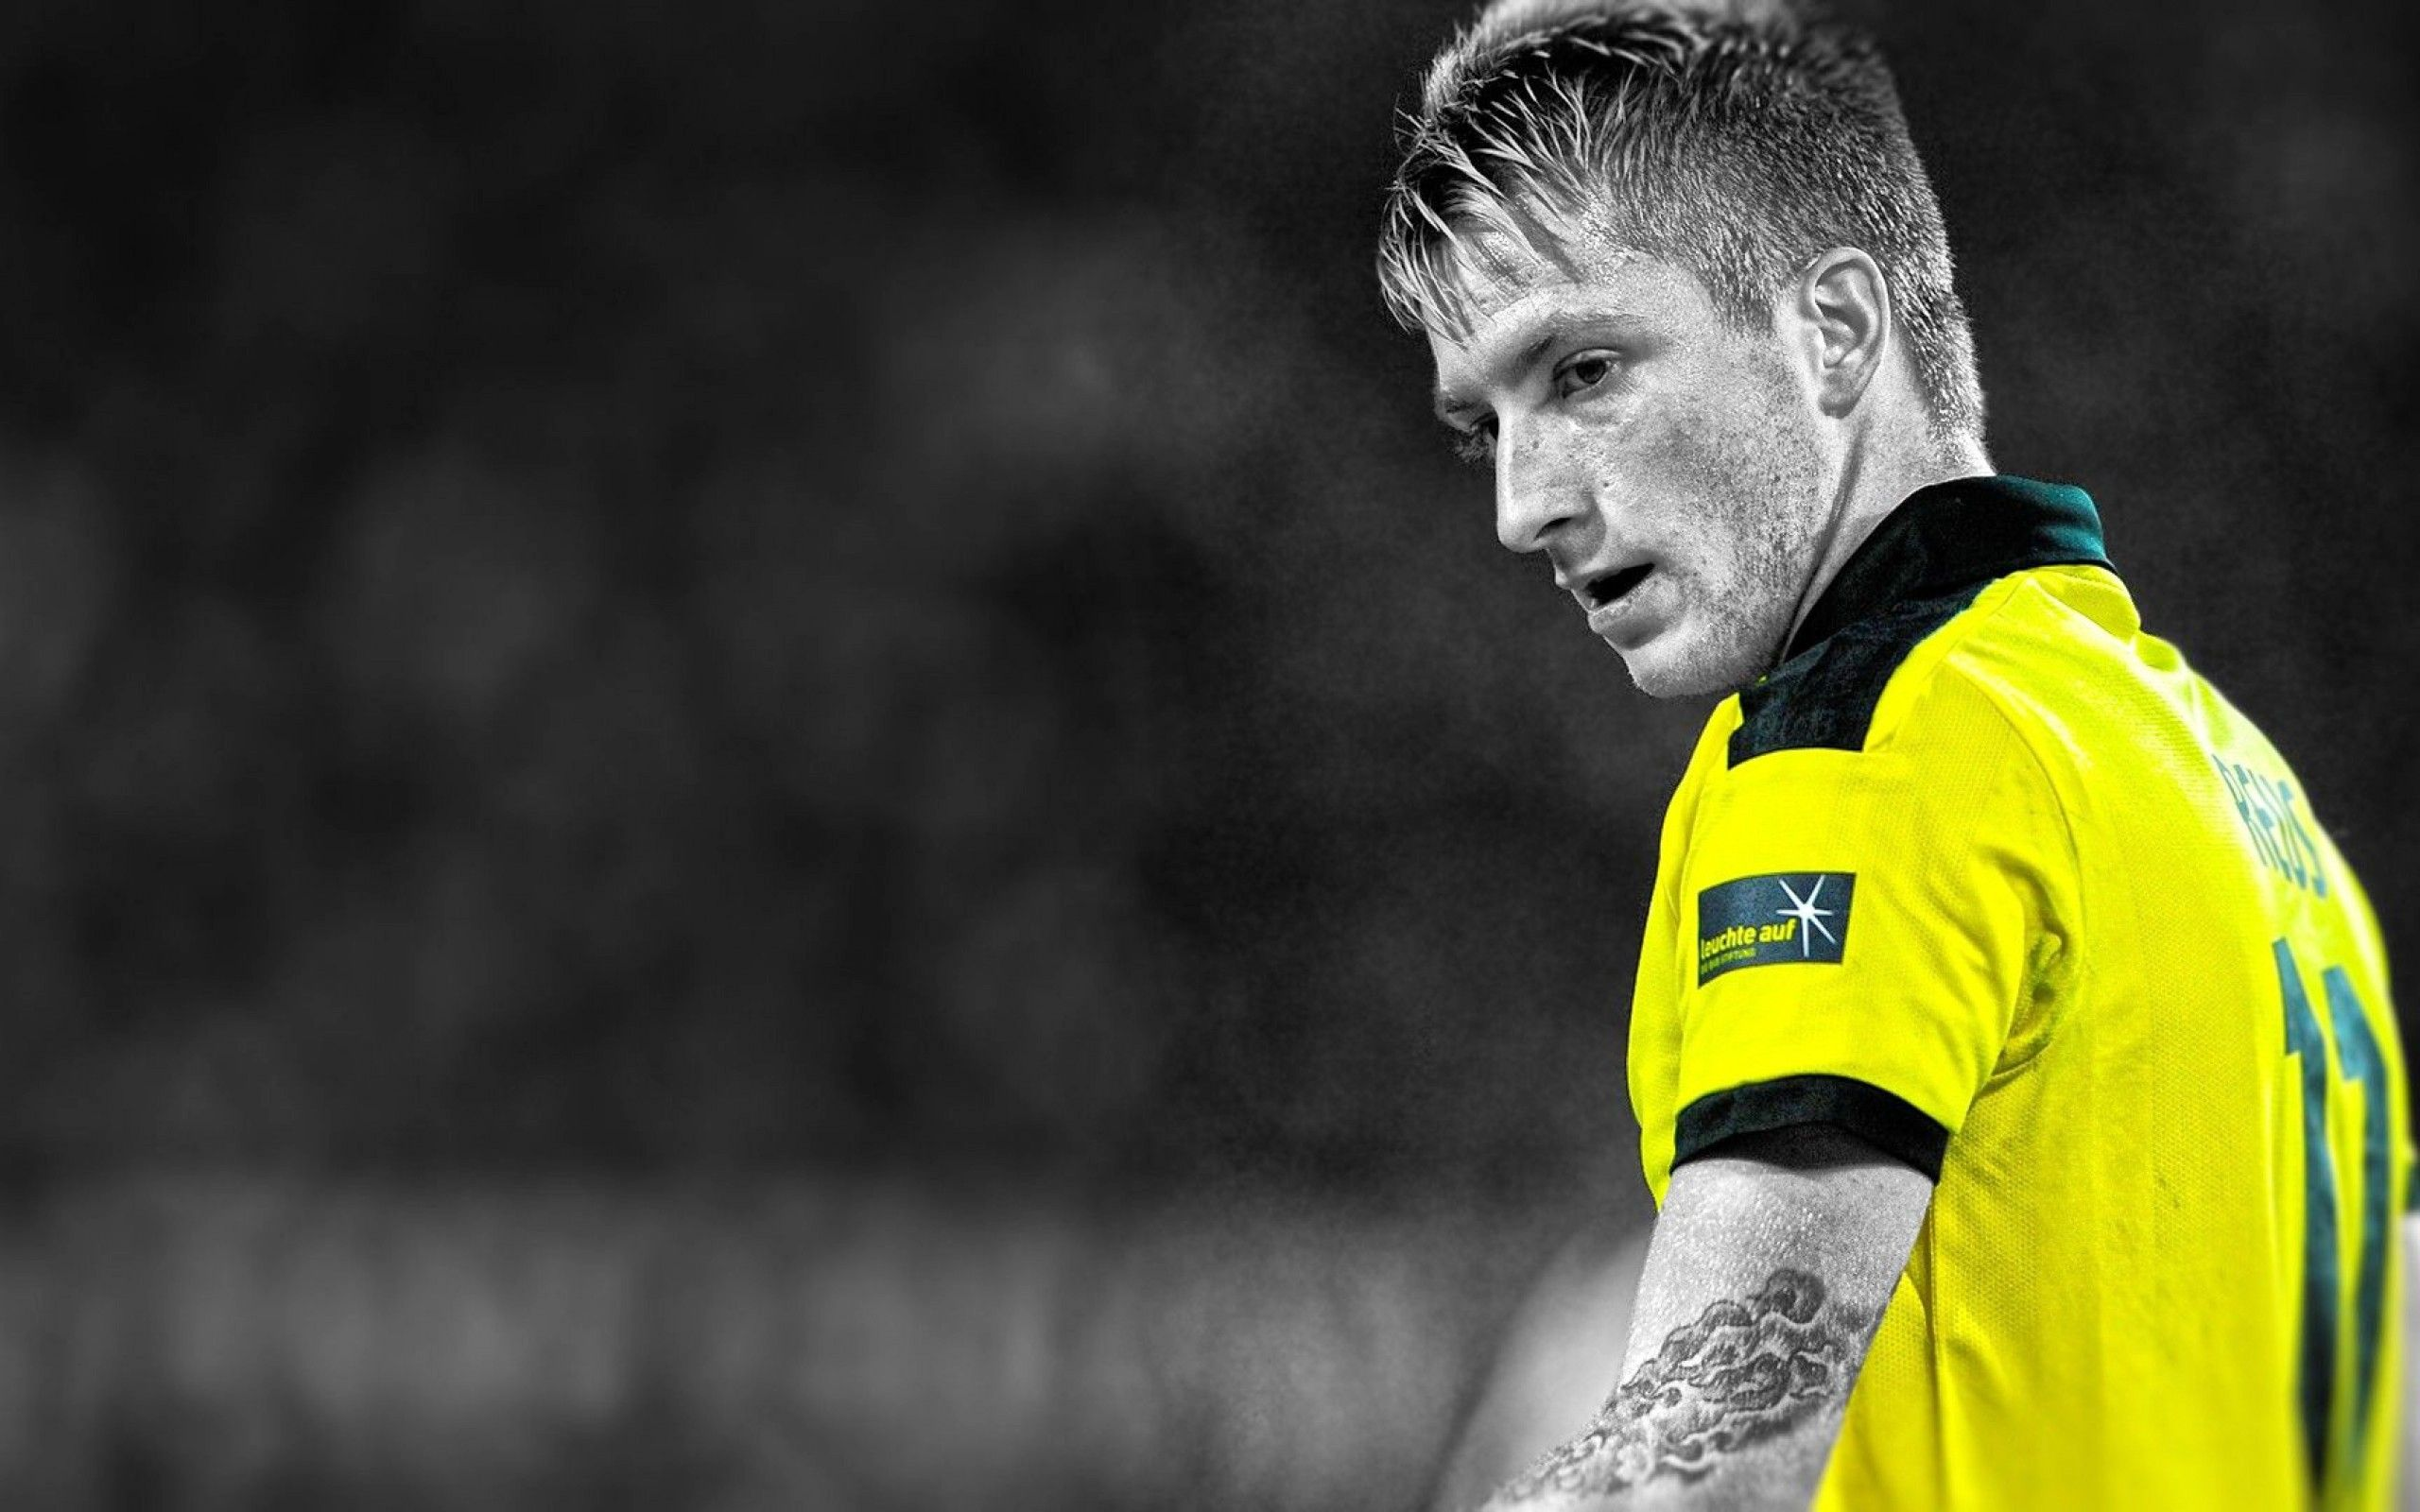 Football Players Marco Reus Hd Wallpaper Marco Reus Reus Best Football Players